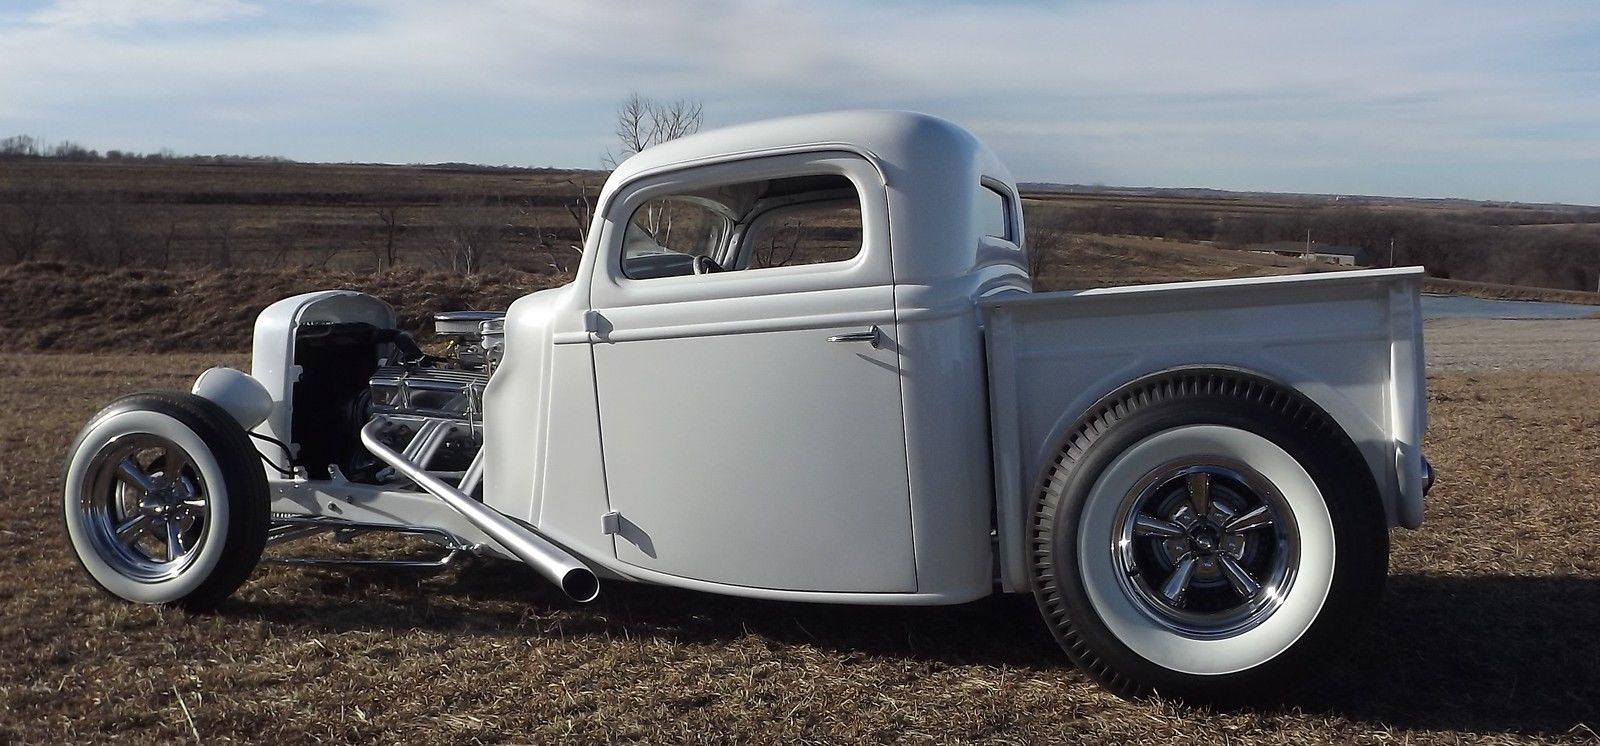 Ford Truck Pickup Lowered Nostalgia Hot Rod Rat Rod C Bagged Chopped moreover Ford Rat Rod Pickup likewise International Rat Rod Pick Up Truck Vonskip further Dodge Rat Rod Pickup Pre War For Sale moreover Ford Rat Rod Hot Rod Street Rod Pickup. on 1936 ford pickup rat rod truck